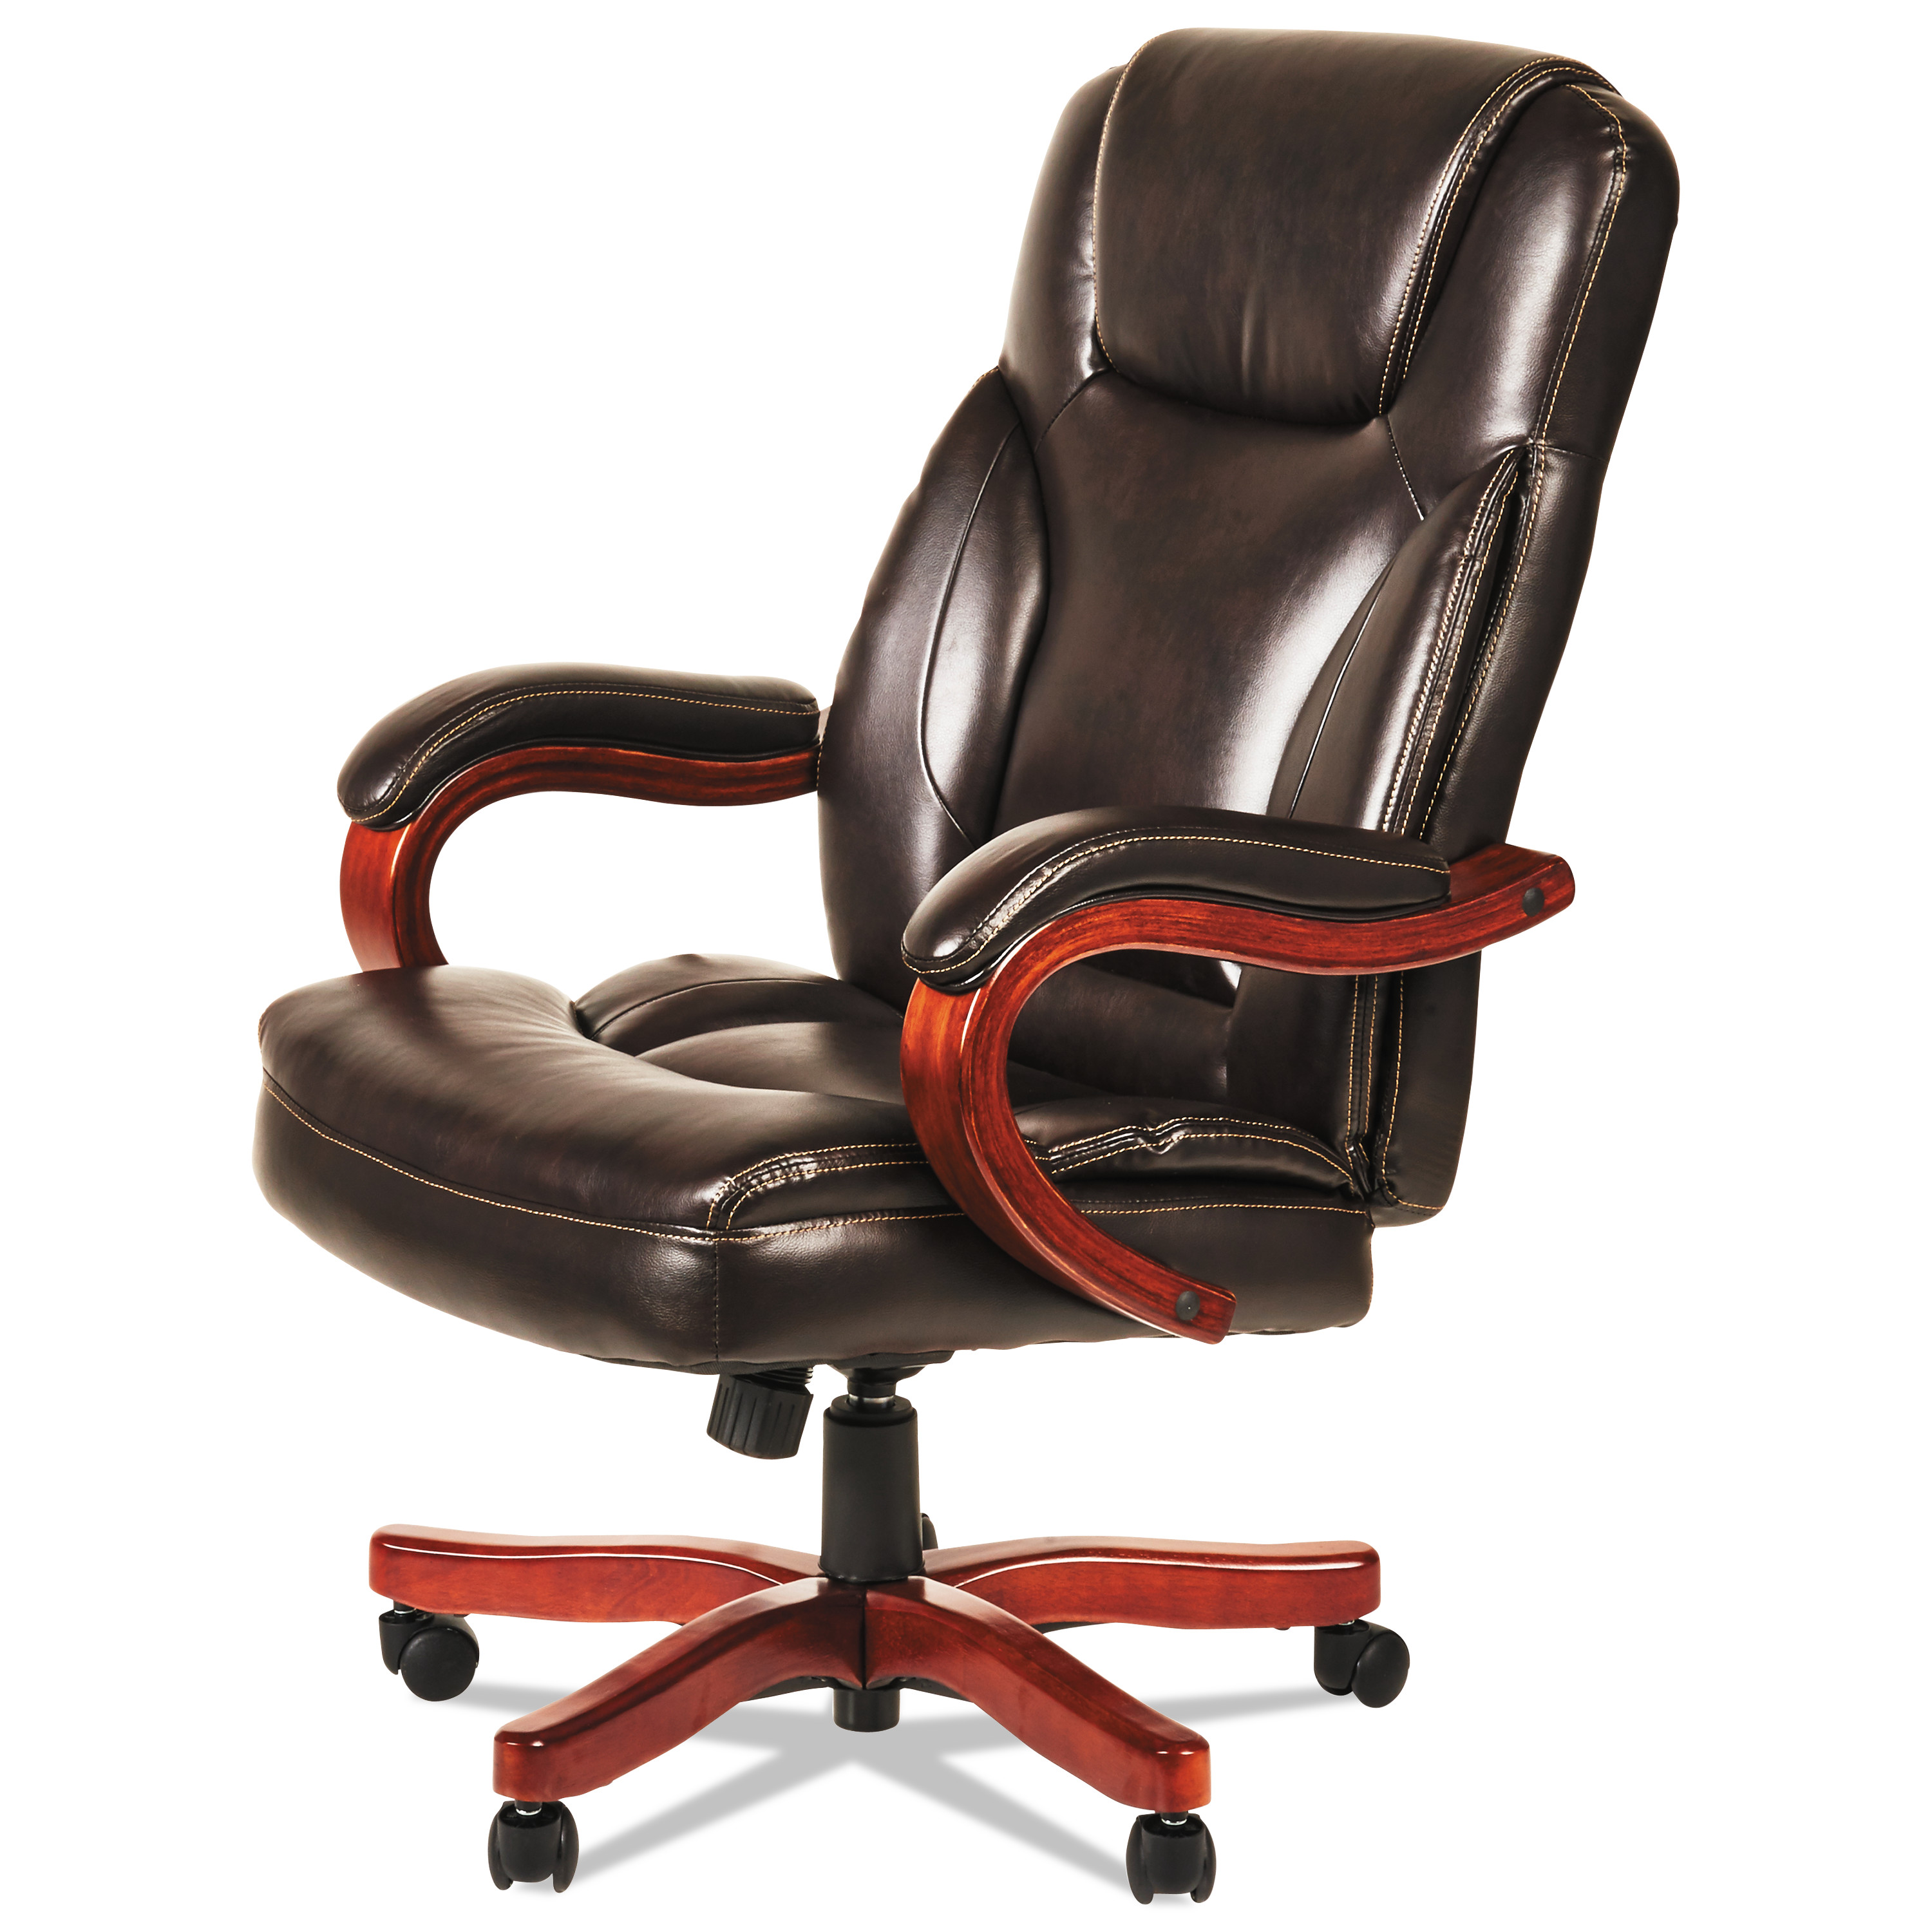 Alera Office Chairs Alera Transitional Series Executive Wood Chair Chocolate Marble